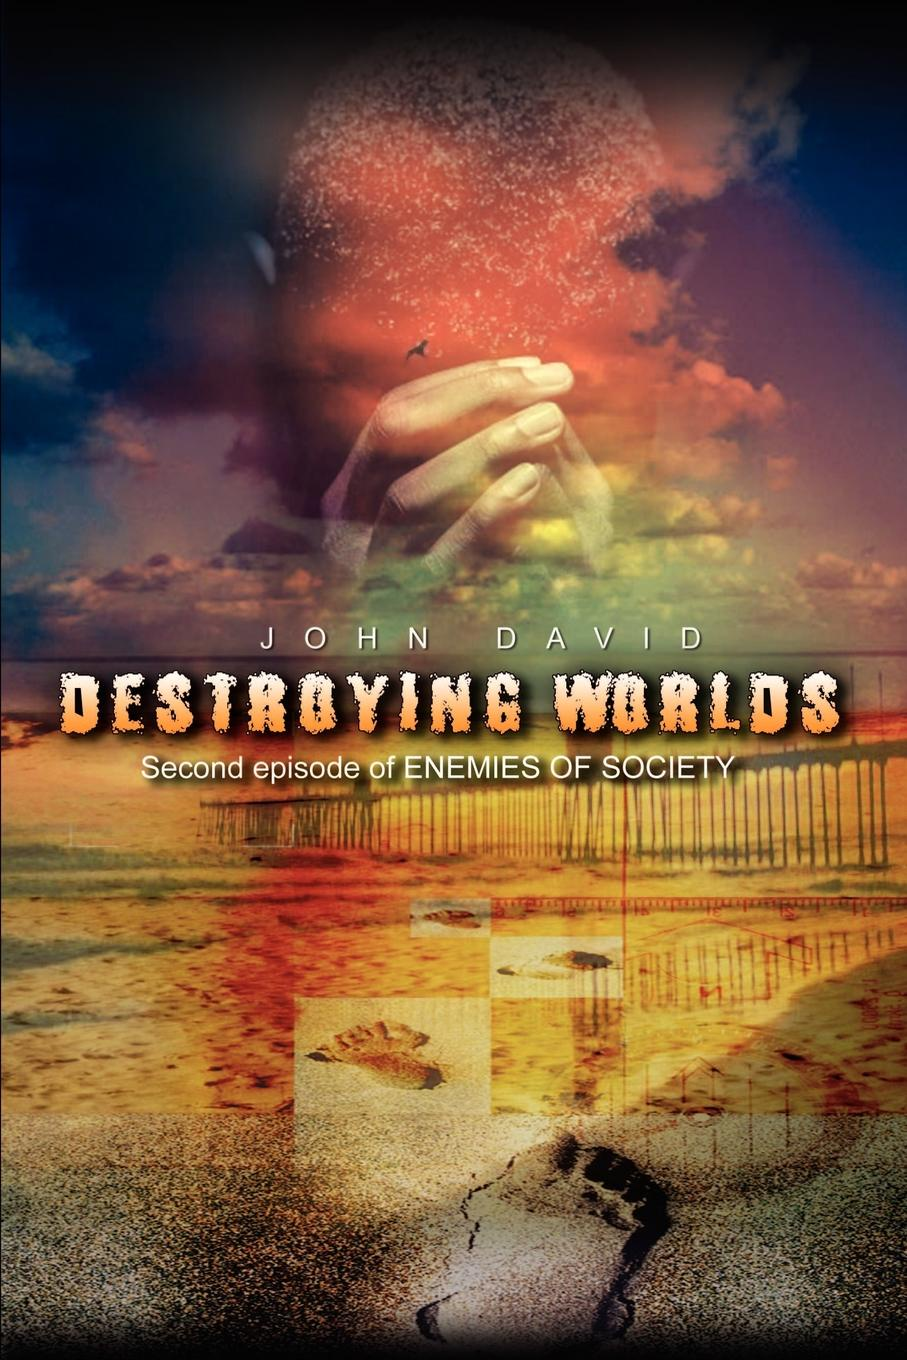 John David Destroying Worlds. Second episode of ENEMIES OF SOCIETY circle of enemies